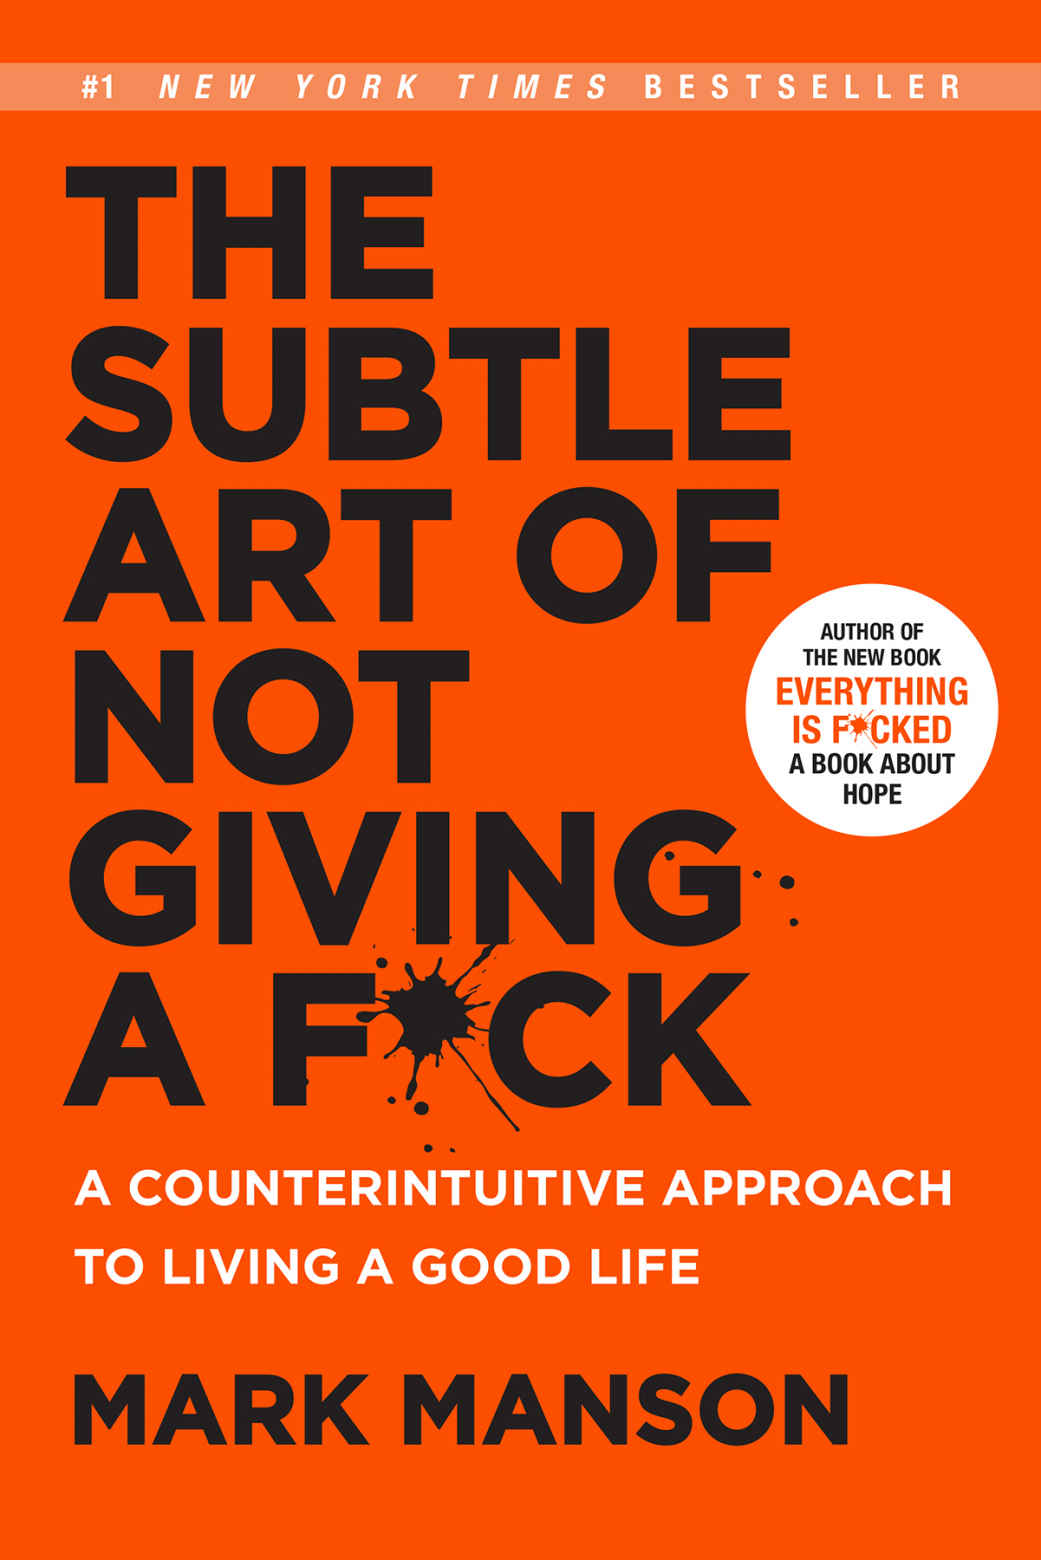 The Subtle Art Of Not Giving A F*** - We know this book has been around for a while but it bears repeating. You see, staying positive without worrying about the small things is an art we all need to finesse, day in day out. It's work in progress after all. If you haven't already read The Subtle Art of Not Giving a F*ck, we suggest you run straight to your local book store or add it to your digital cart, ASAP.